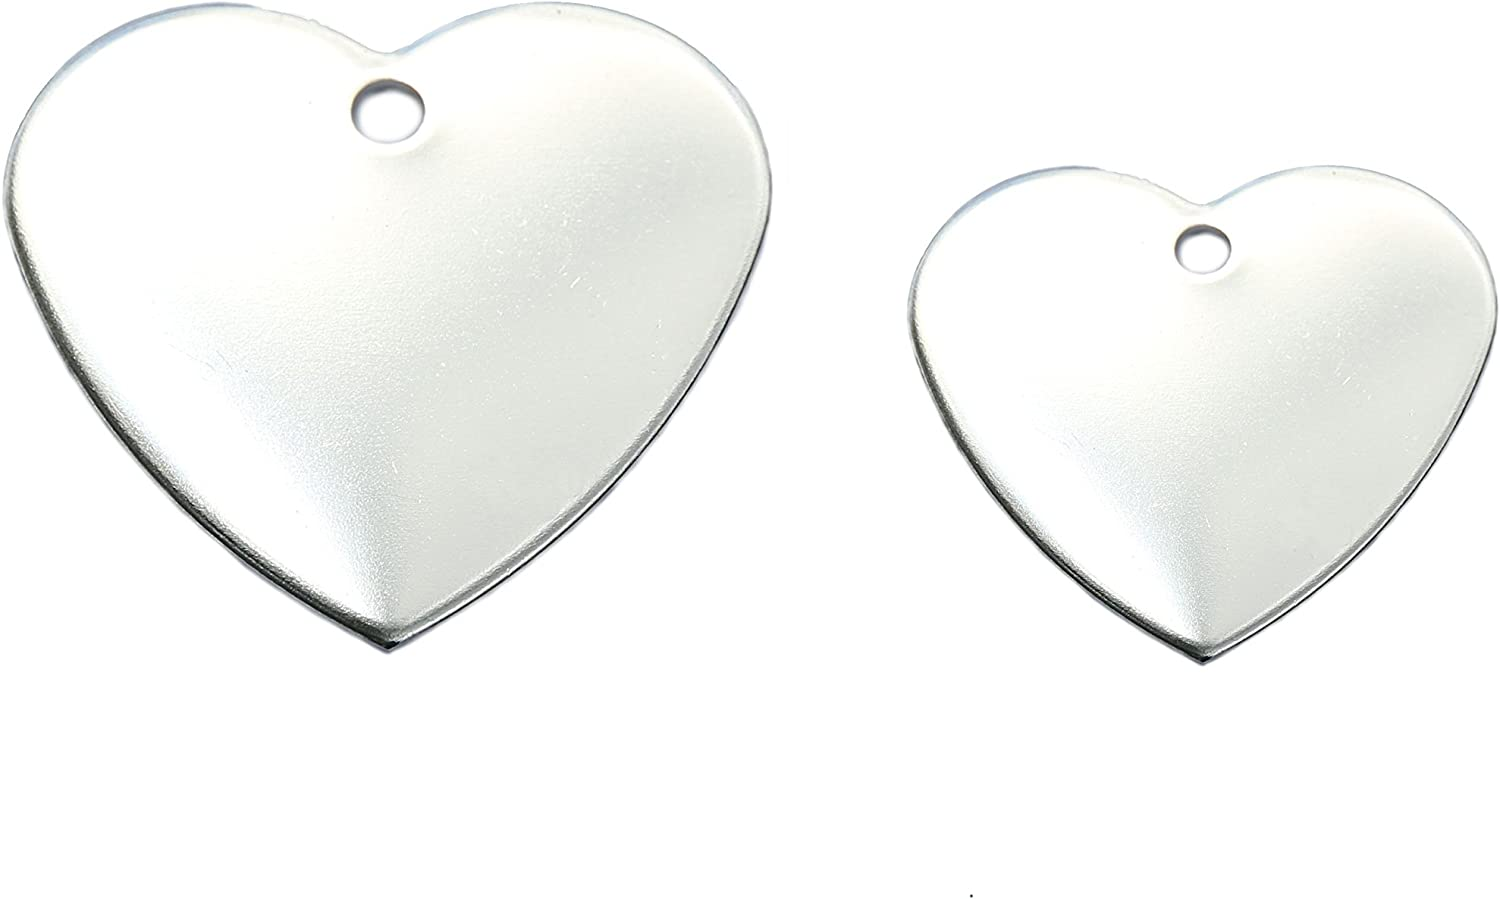 10 Bulk Wholesale Blank Heart Shape Premium Pet Id Tag in Polished Stainless Steel